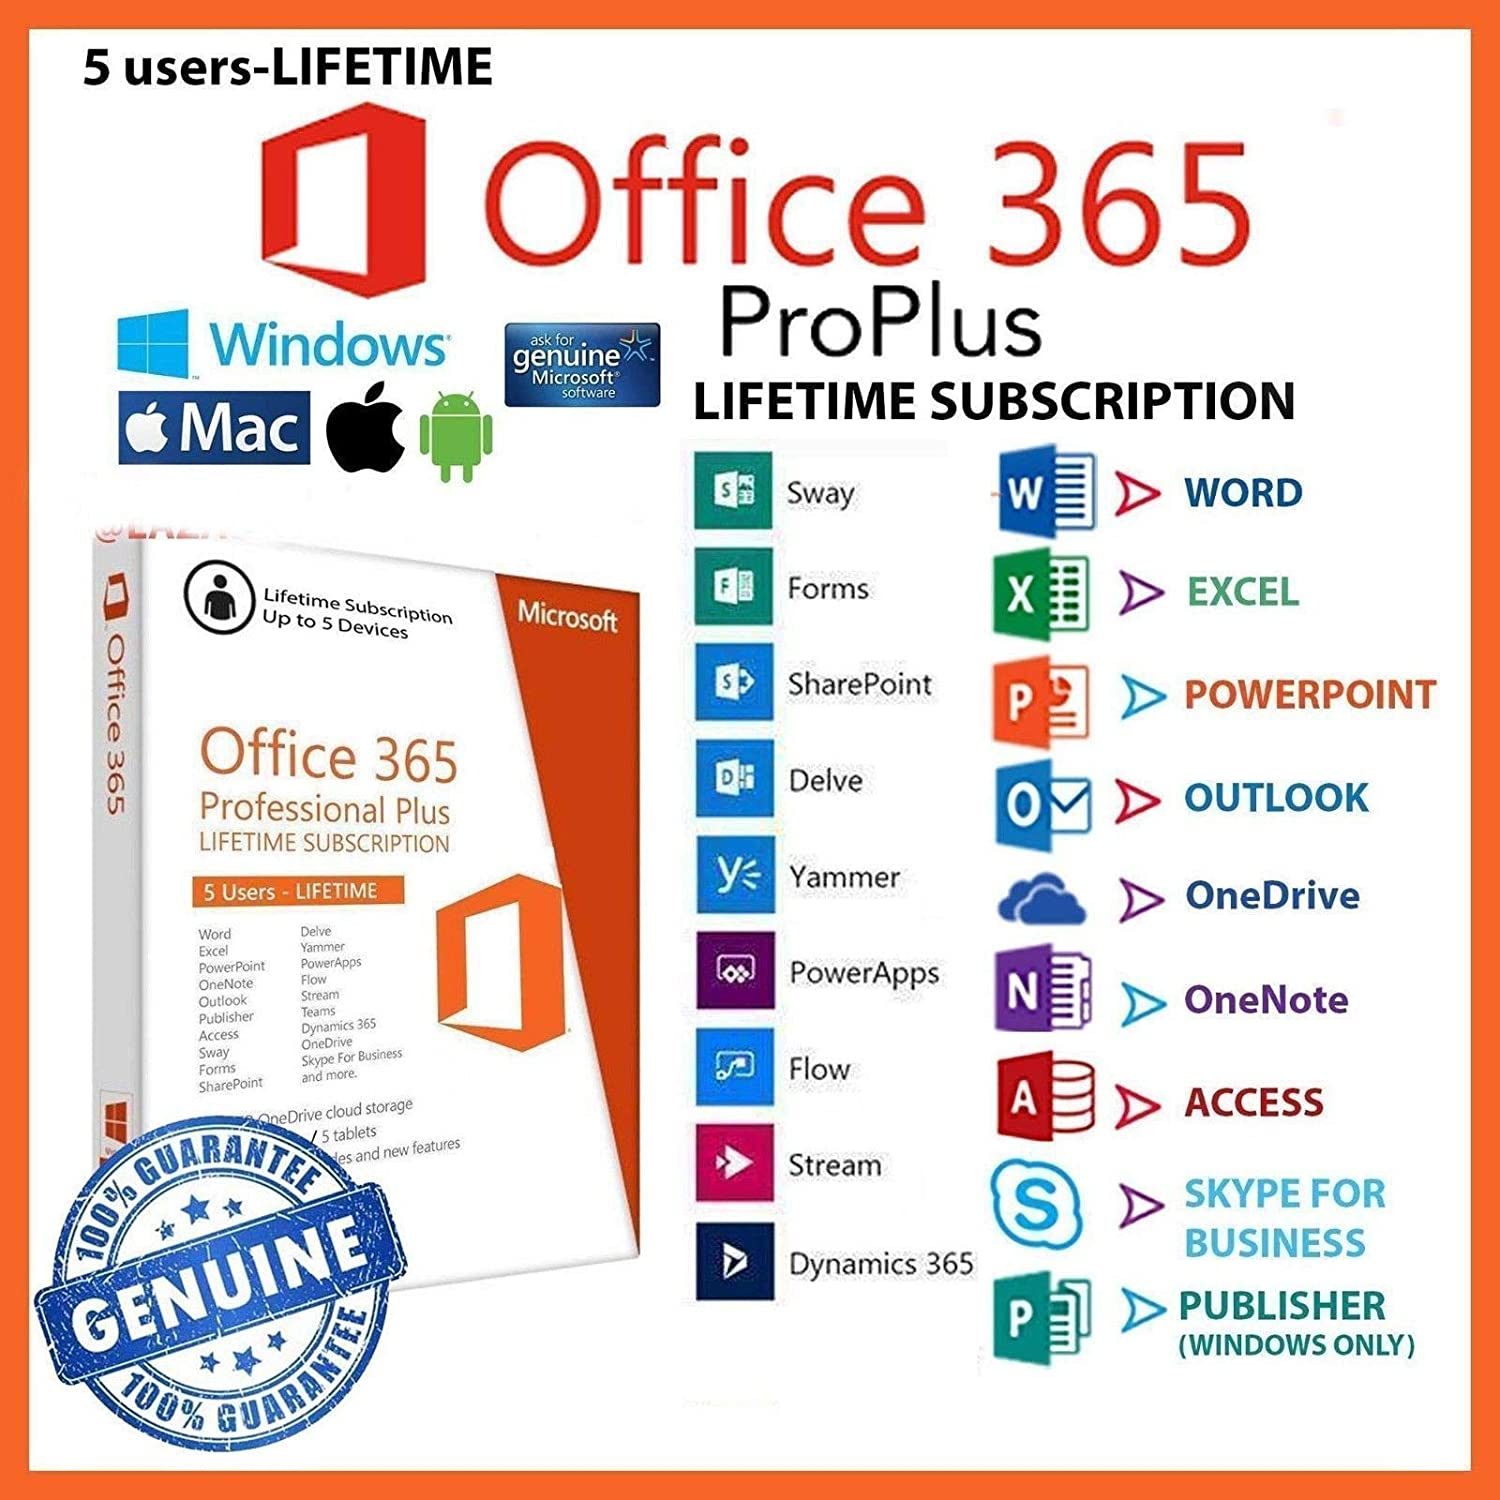 Microsoft Office 365, Lifetime Subscription, 5 Devices + 5TB OneDrive (Windows/Mac) (NO DISK)